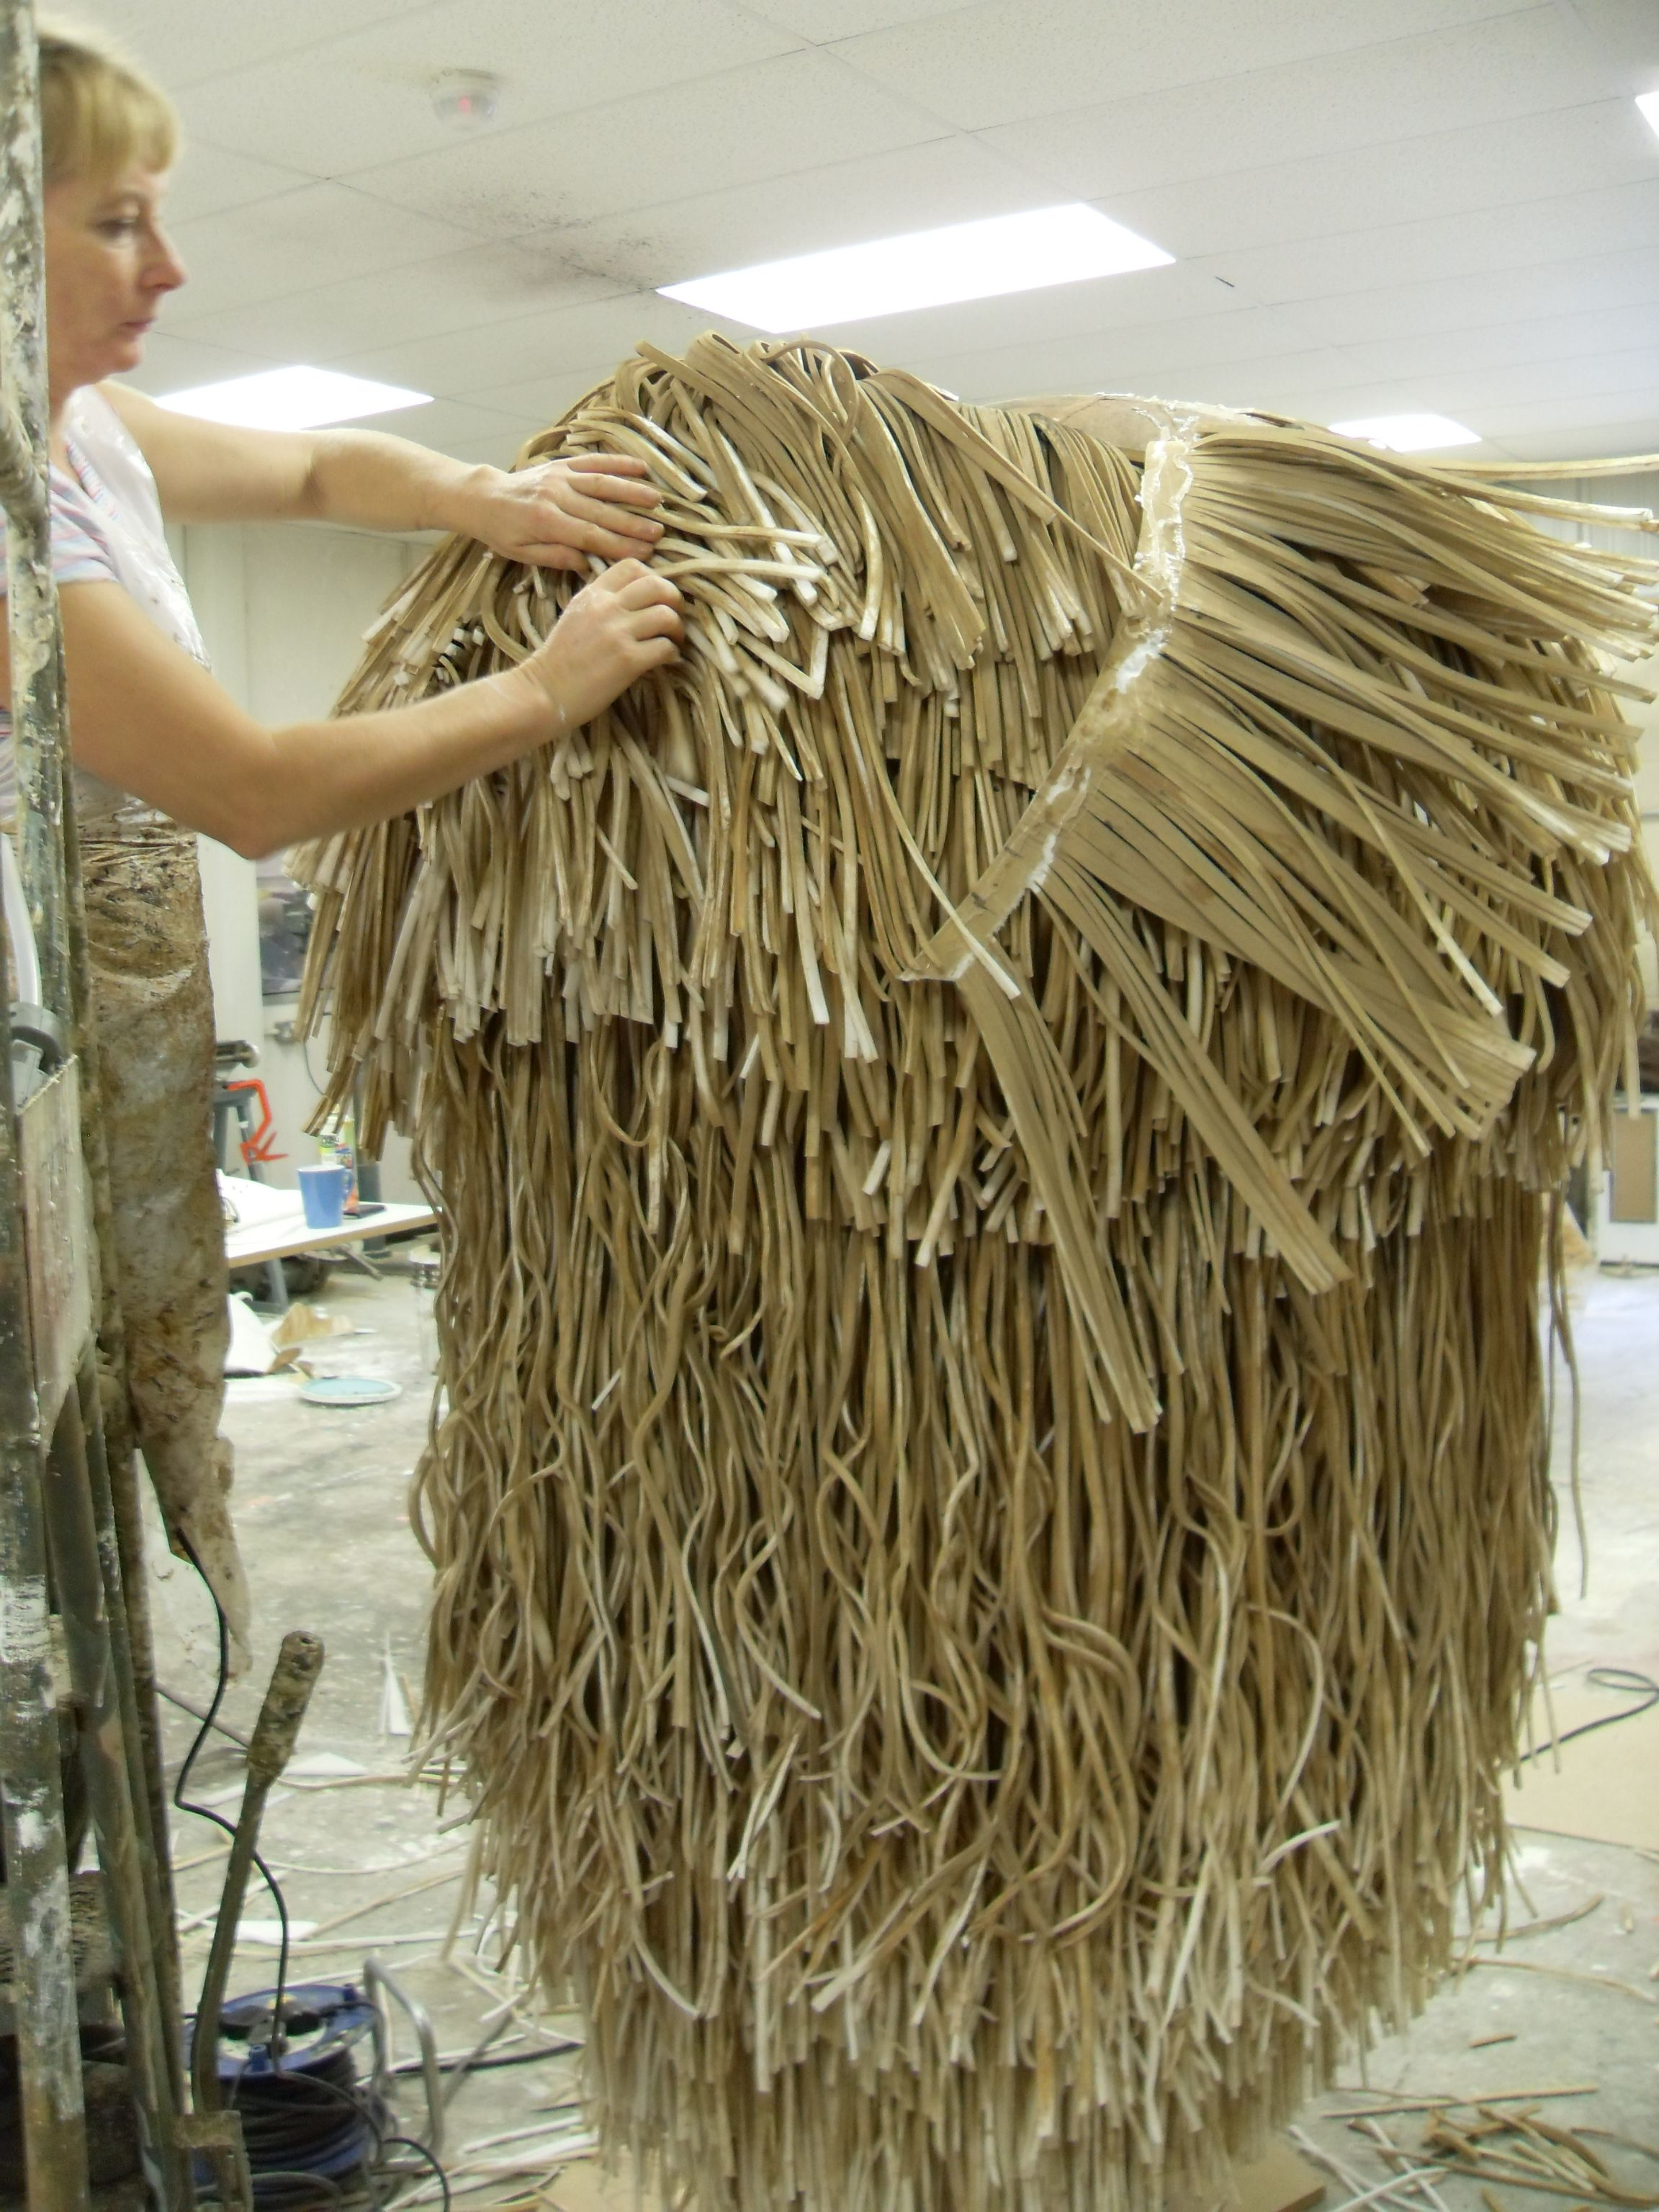 1354cc4ae In order to produce the Giant Mullet costume, a large amount of coiffing  and styling was carried out on the bulk of hair to create the instantly ...